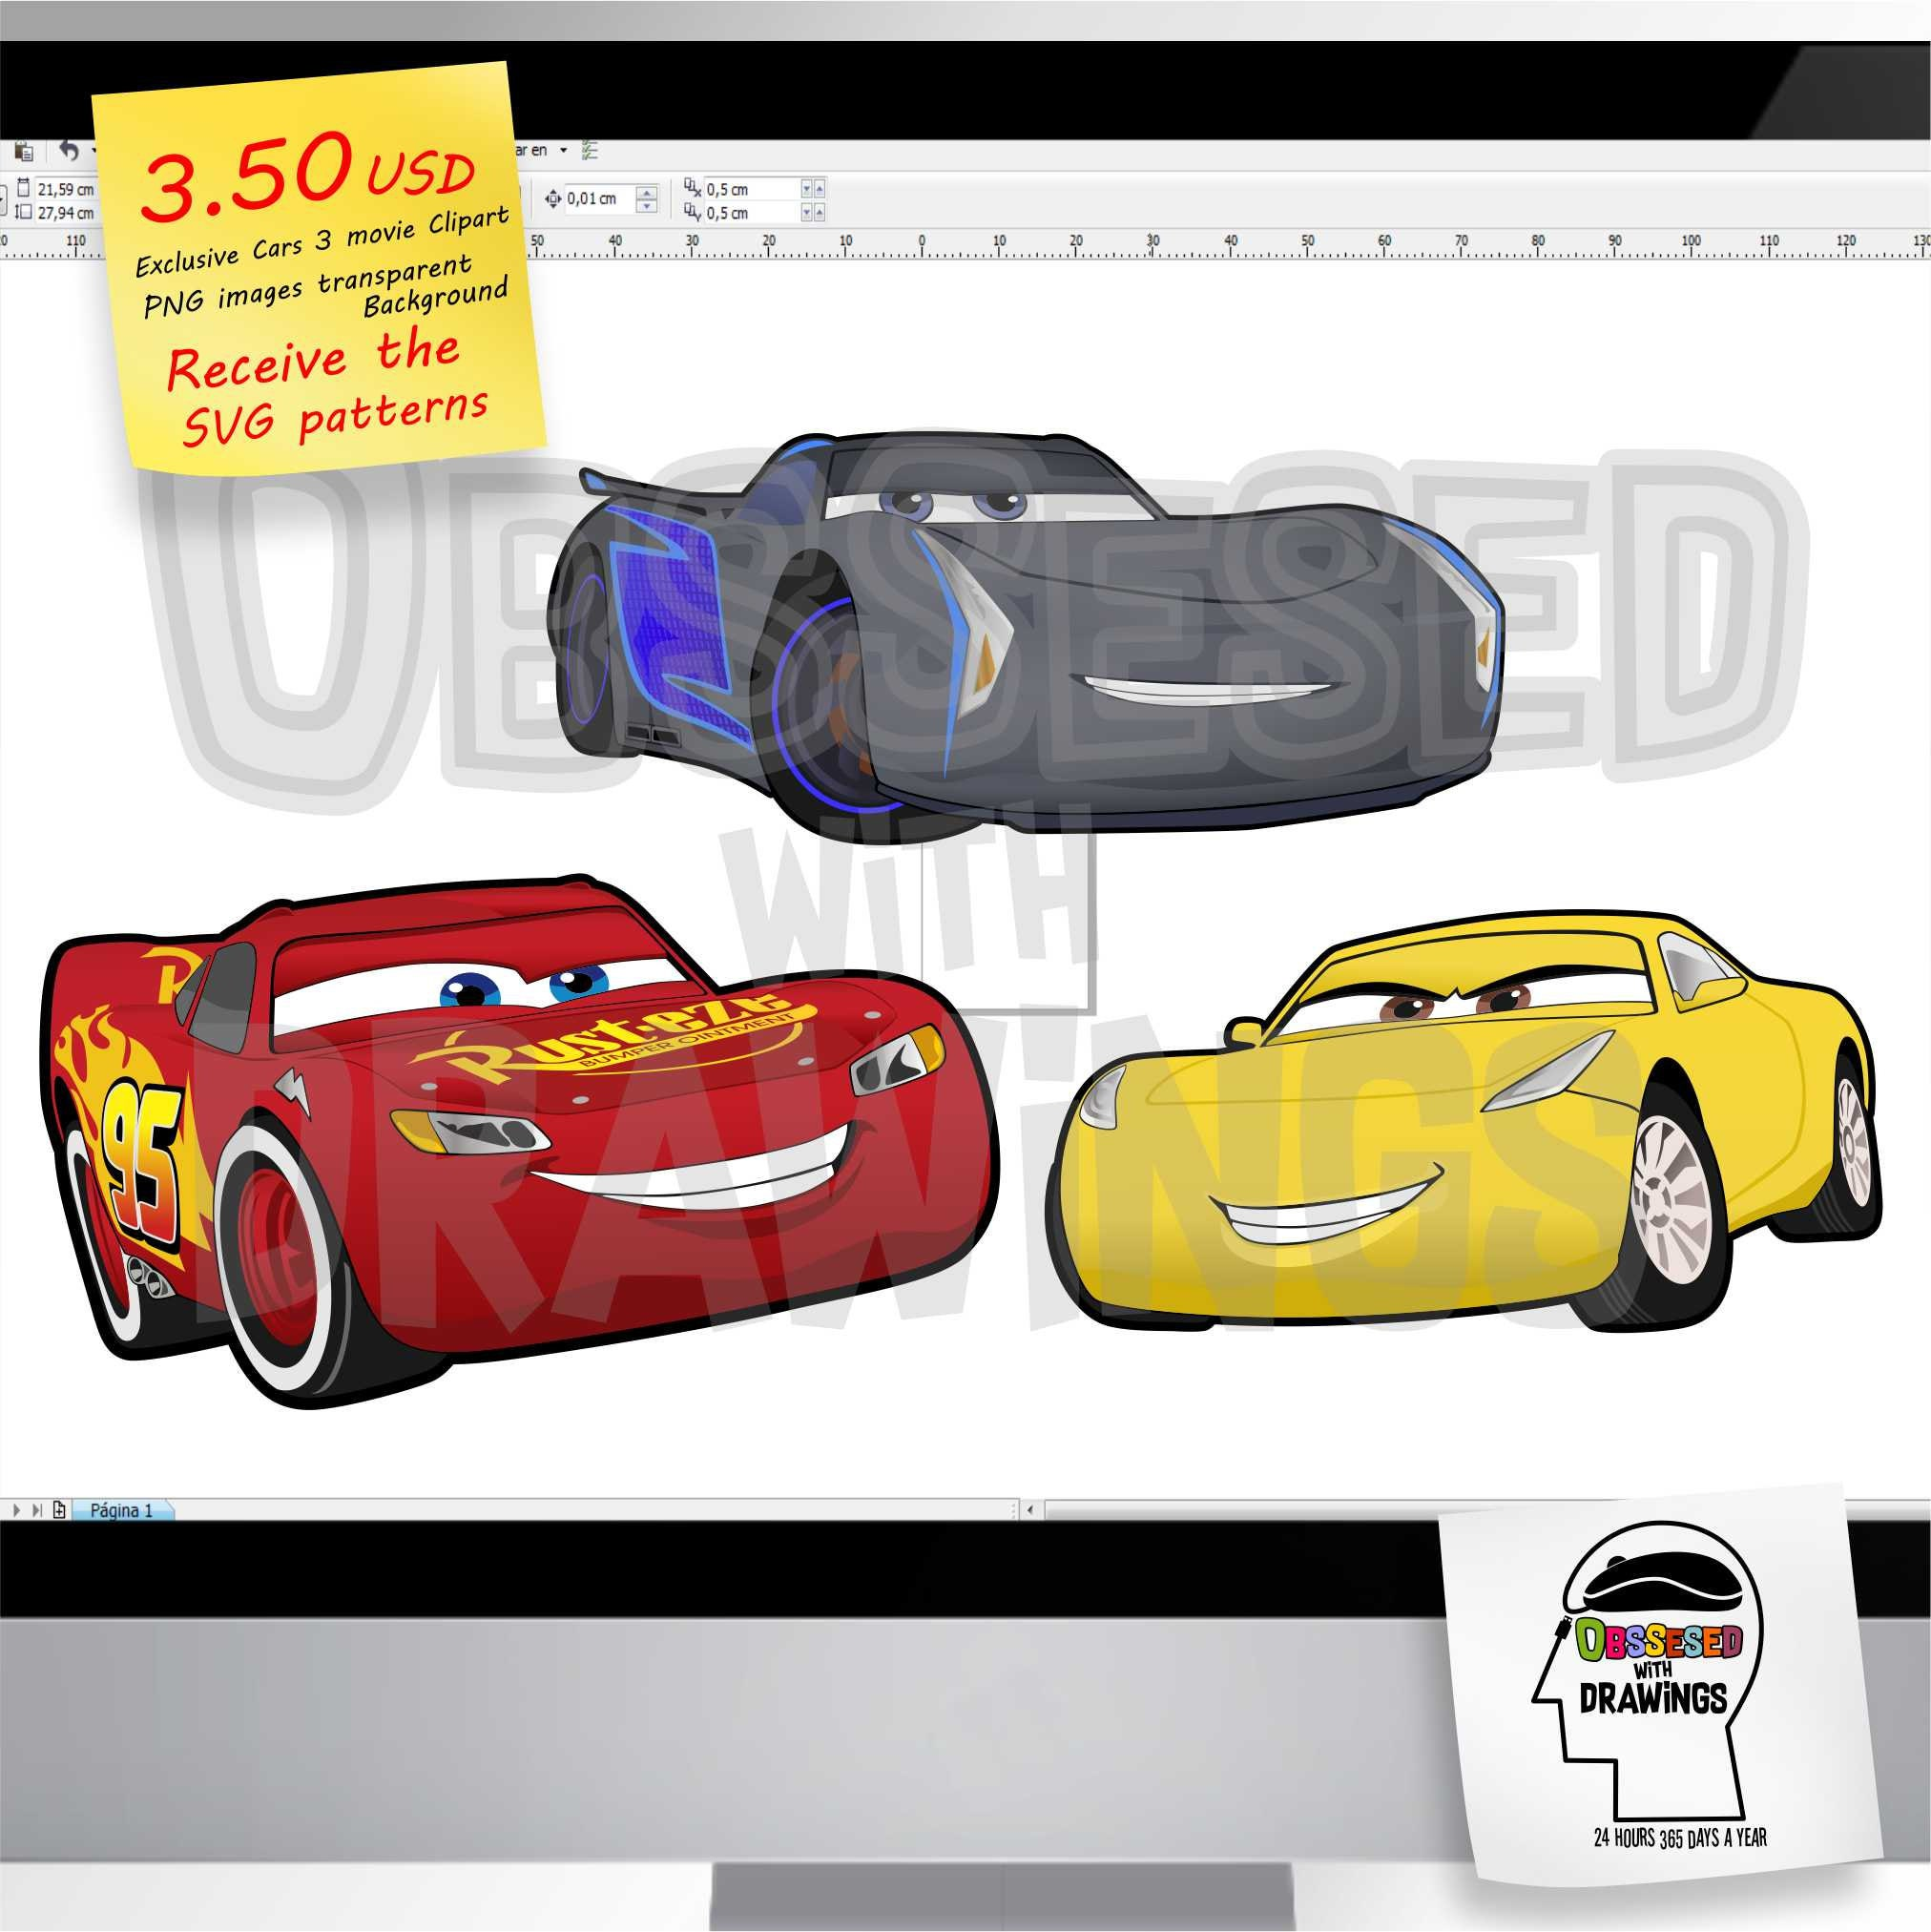 Disney Cars 3 Movie Clipart PNG Images With Excellent